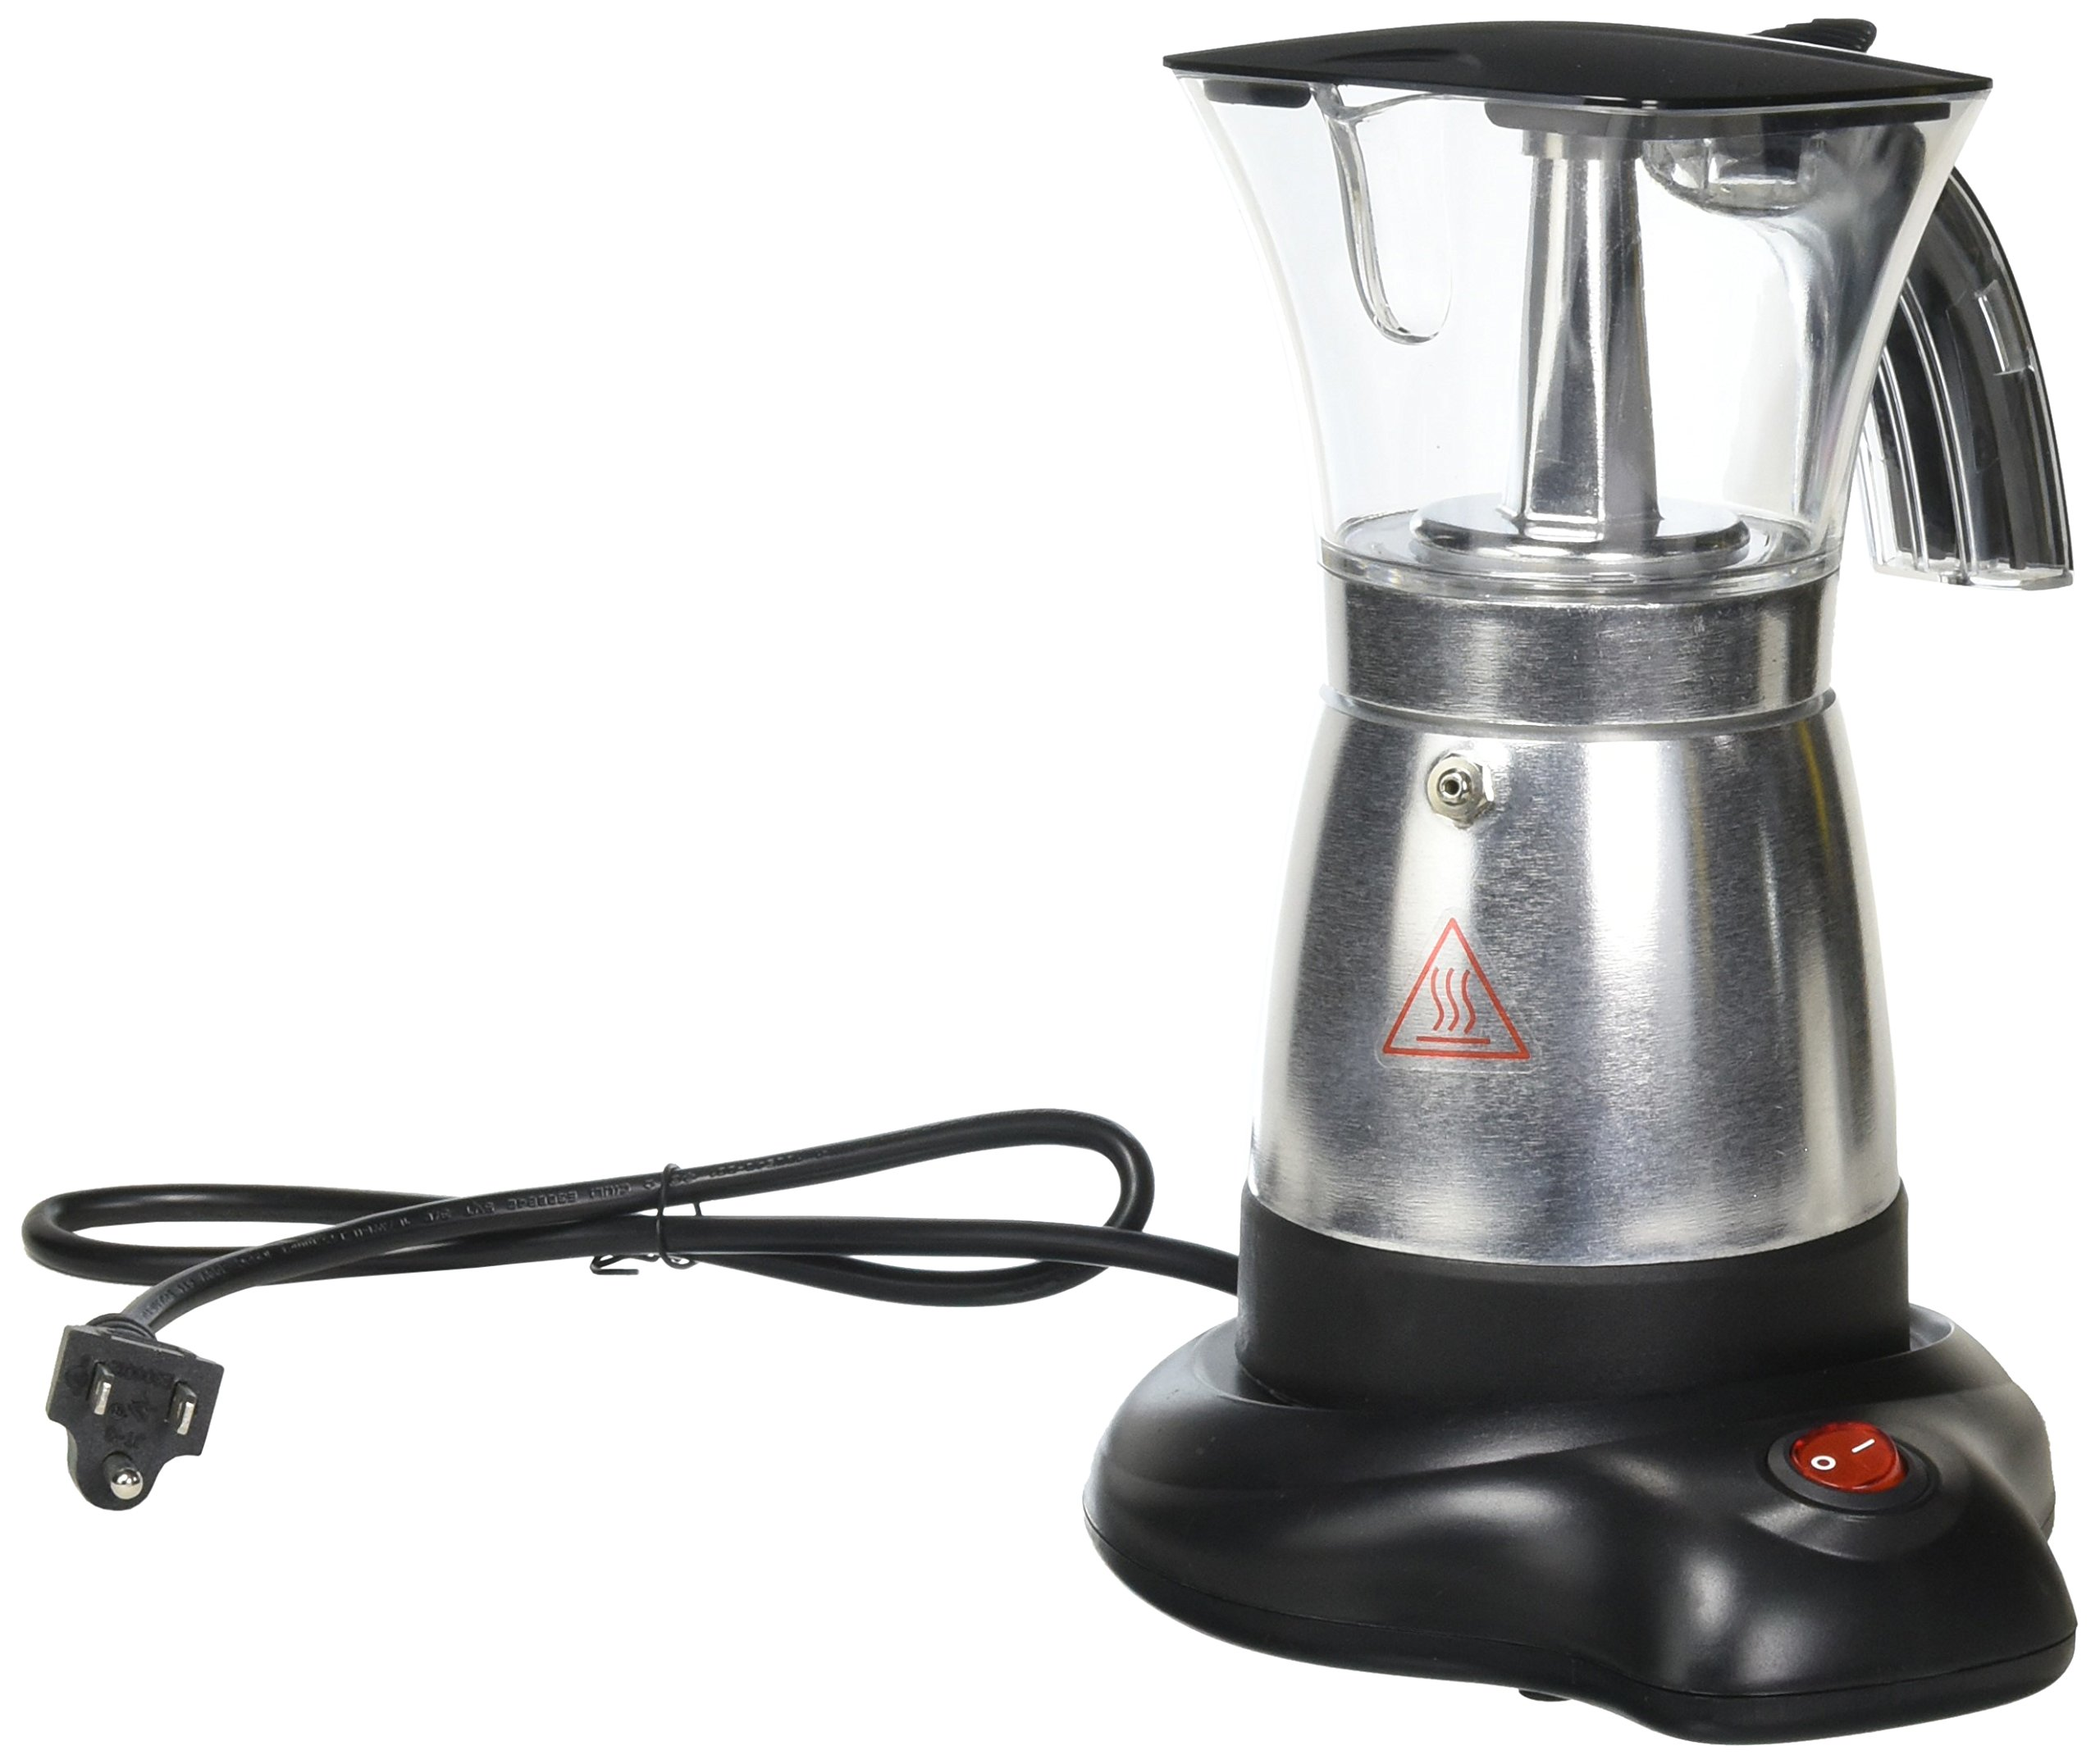 Brentwood TS-118BK Electric Moka Pot Espresso Machine, 6-Cups by Brentwood